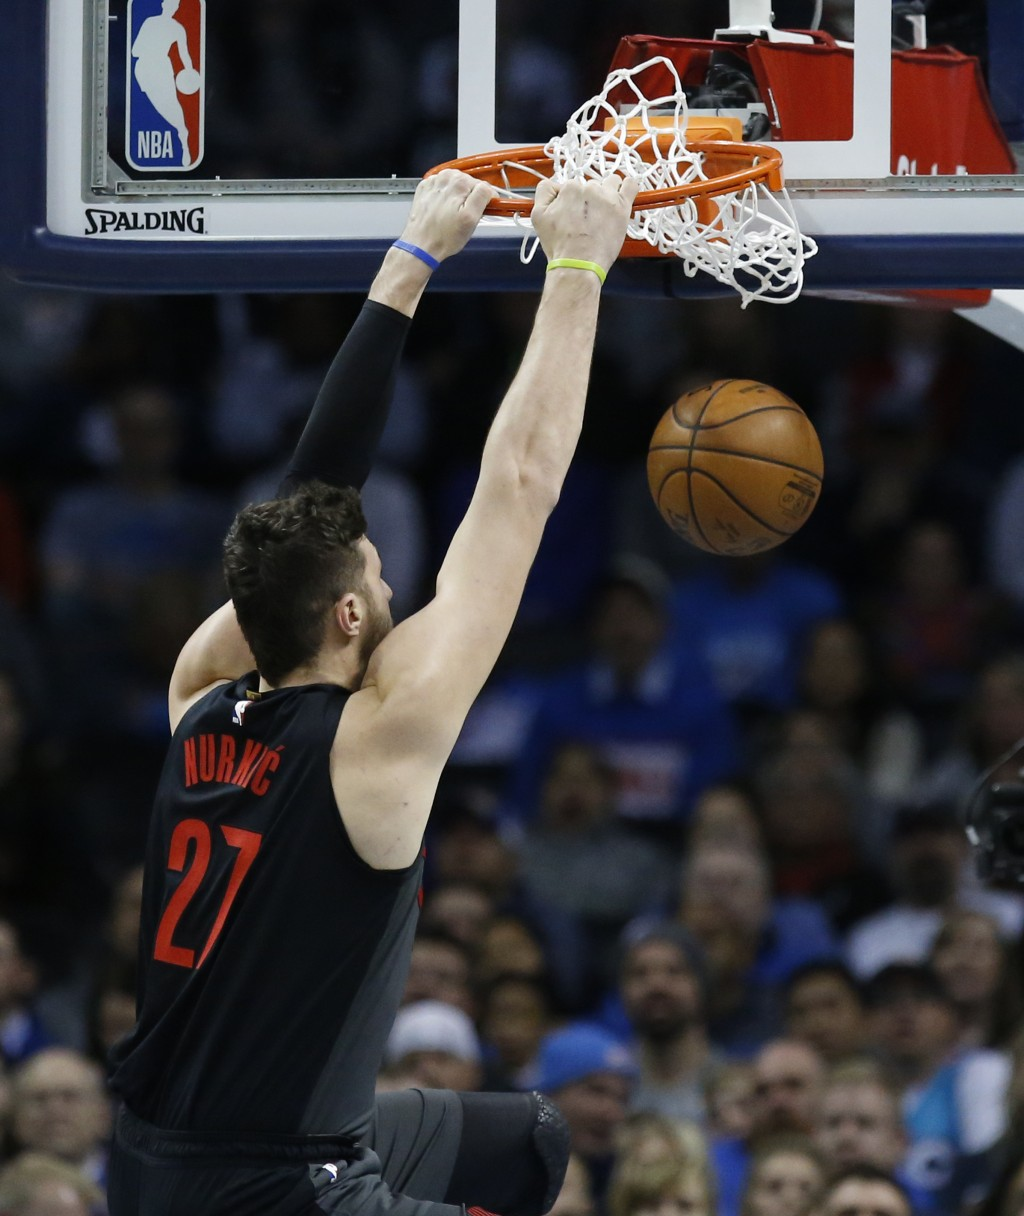 Portland Trail Blazers center Jusuf Nurkic (27) dunks in the first half of an NBA basketball game against the Oklahoma City Thunder in Oklahoma City, ...